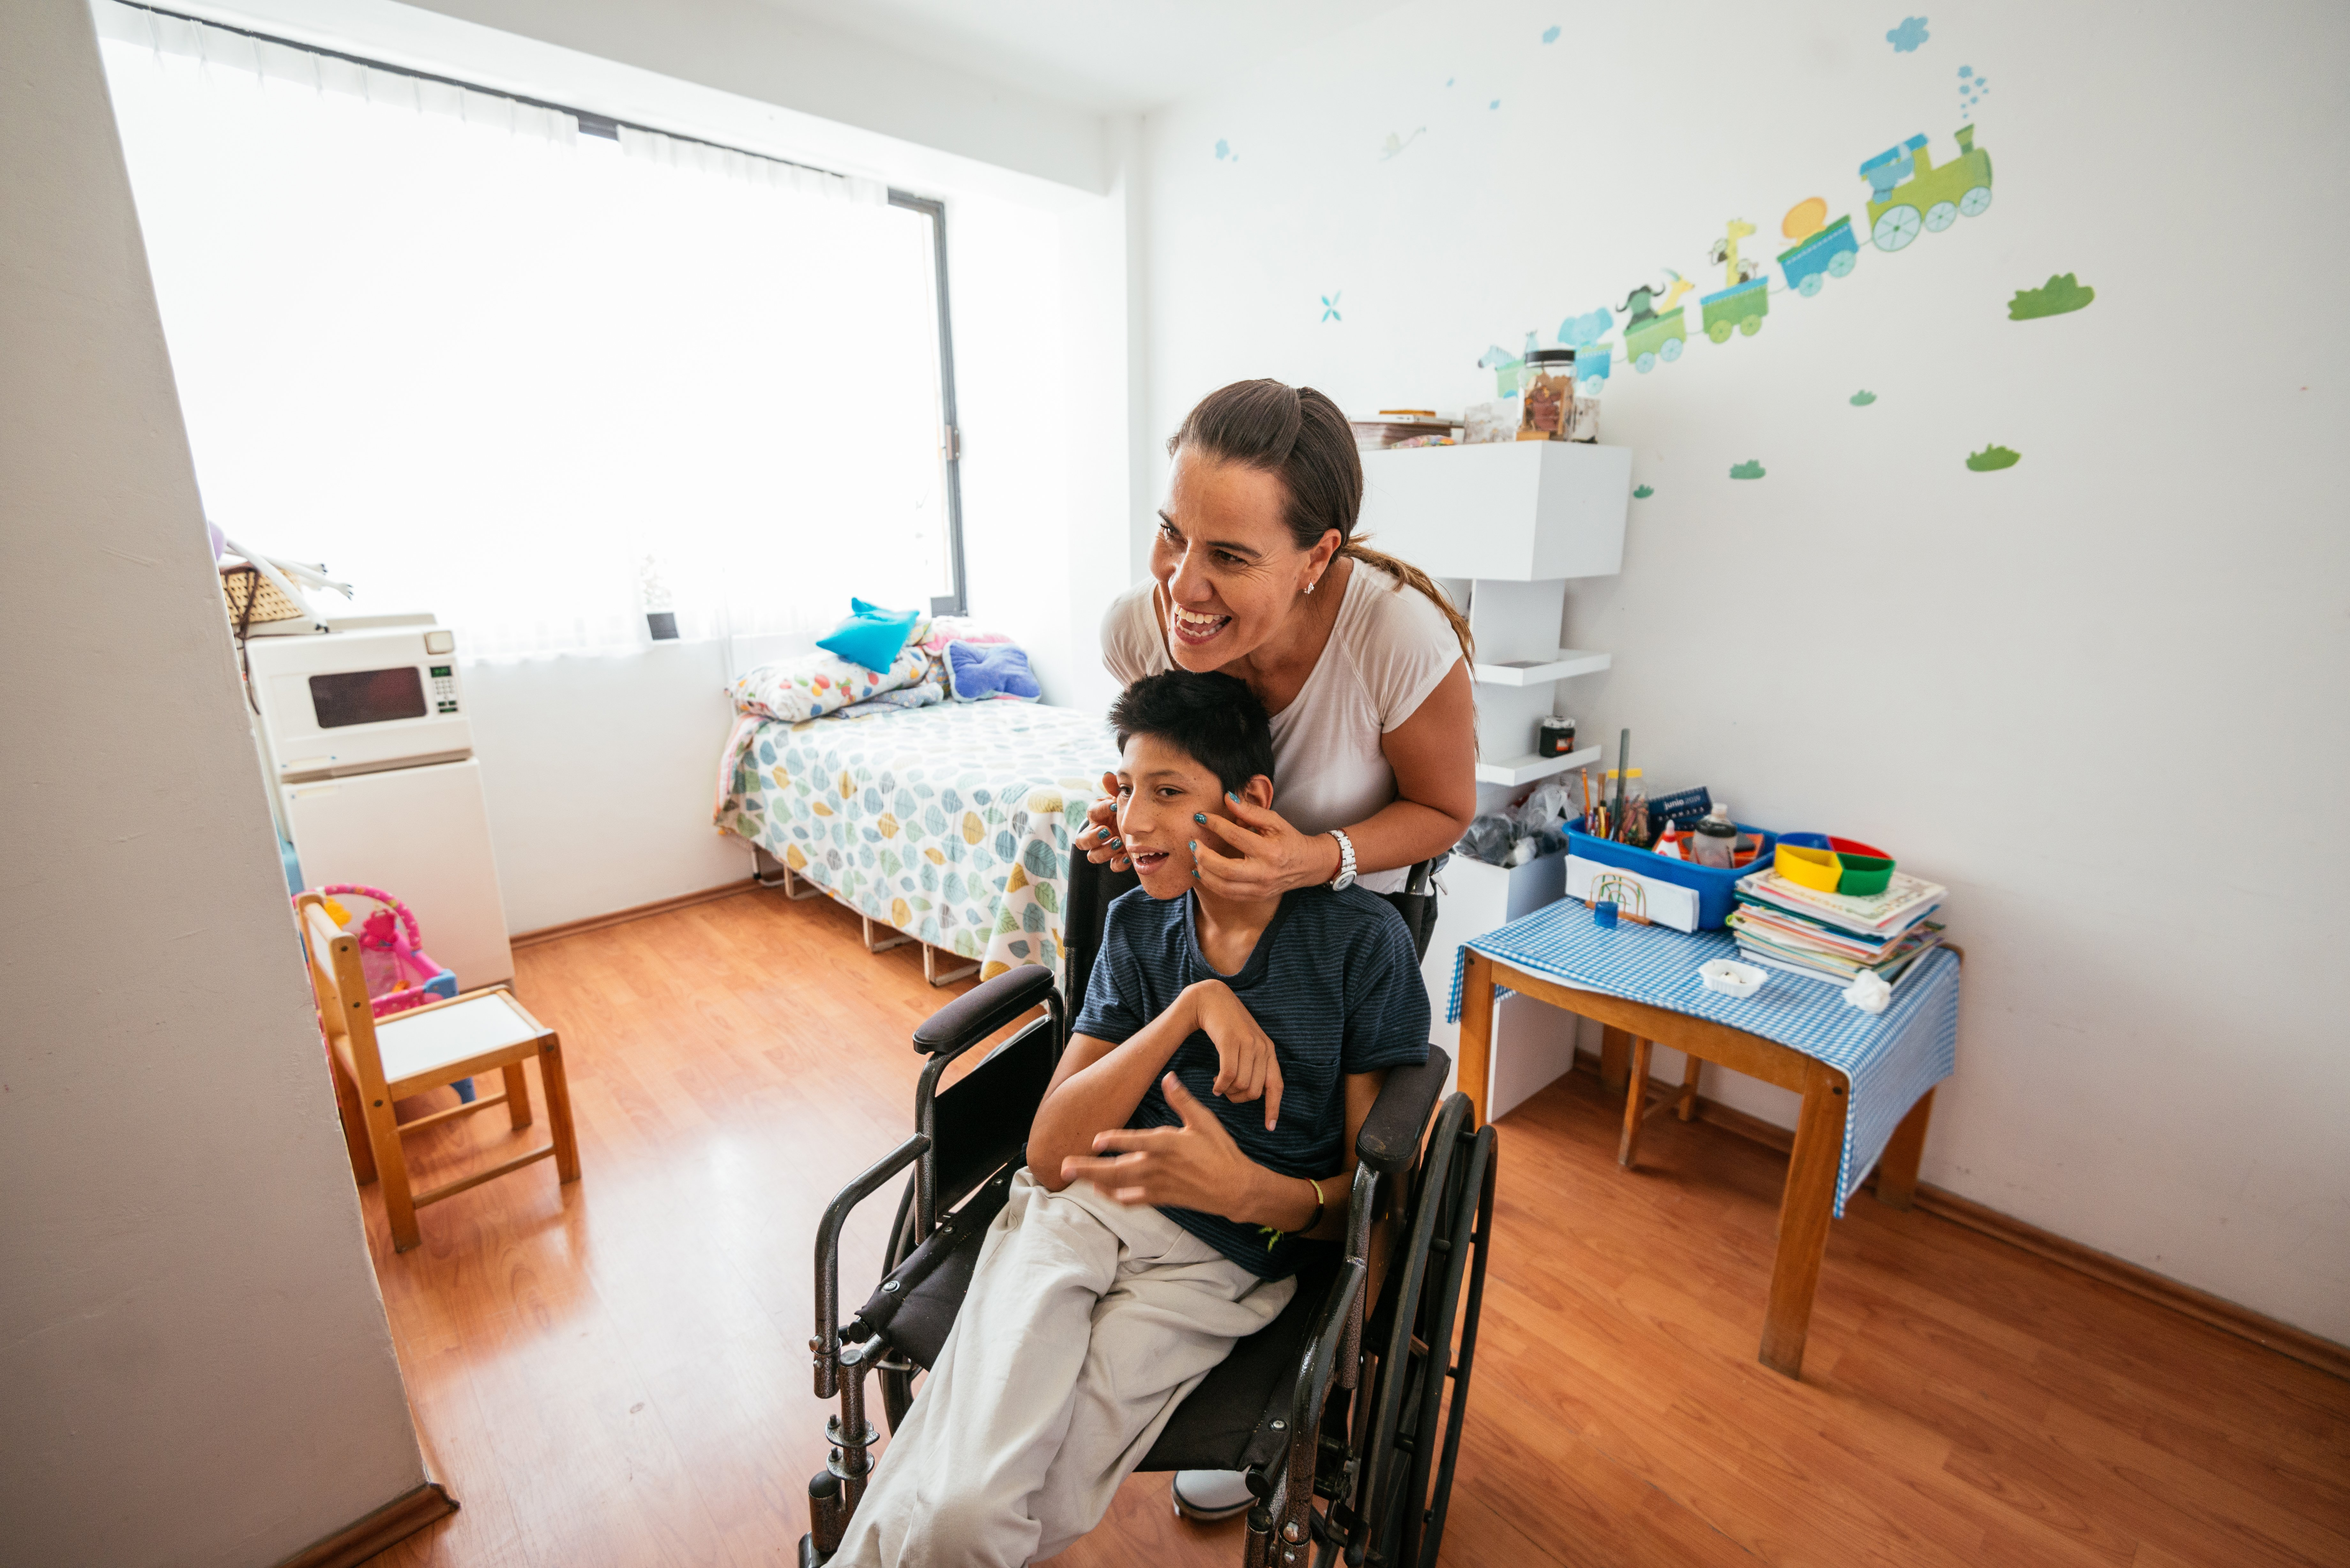 Latina mother massaging her son with Celebral Palsy|Photo: Getty Images